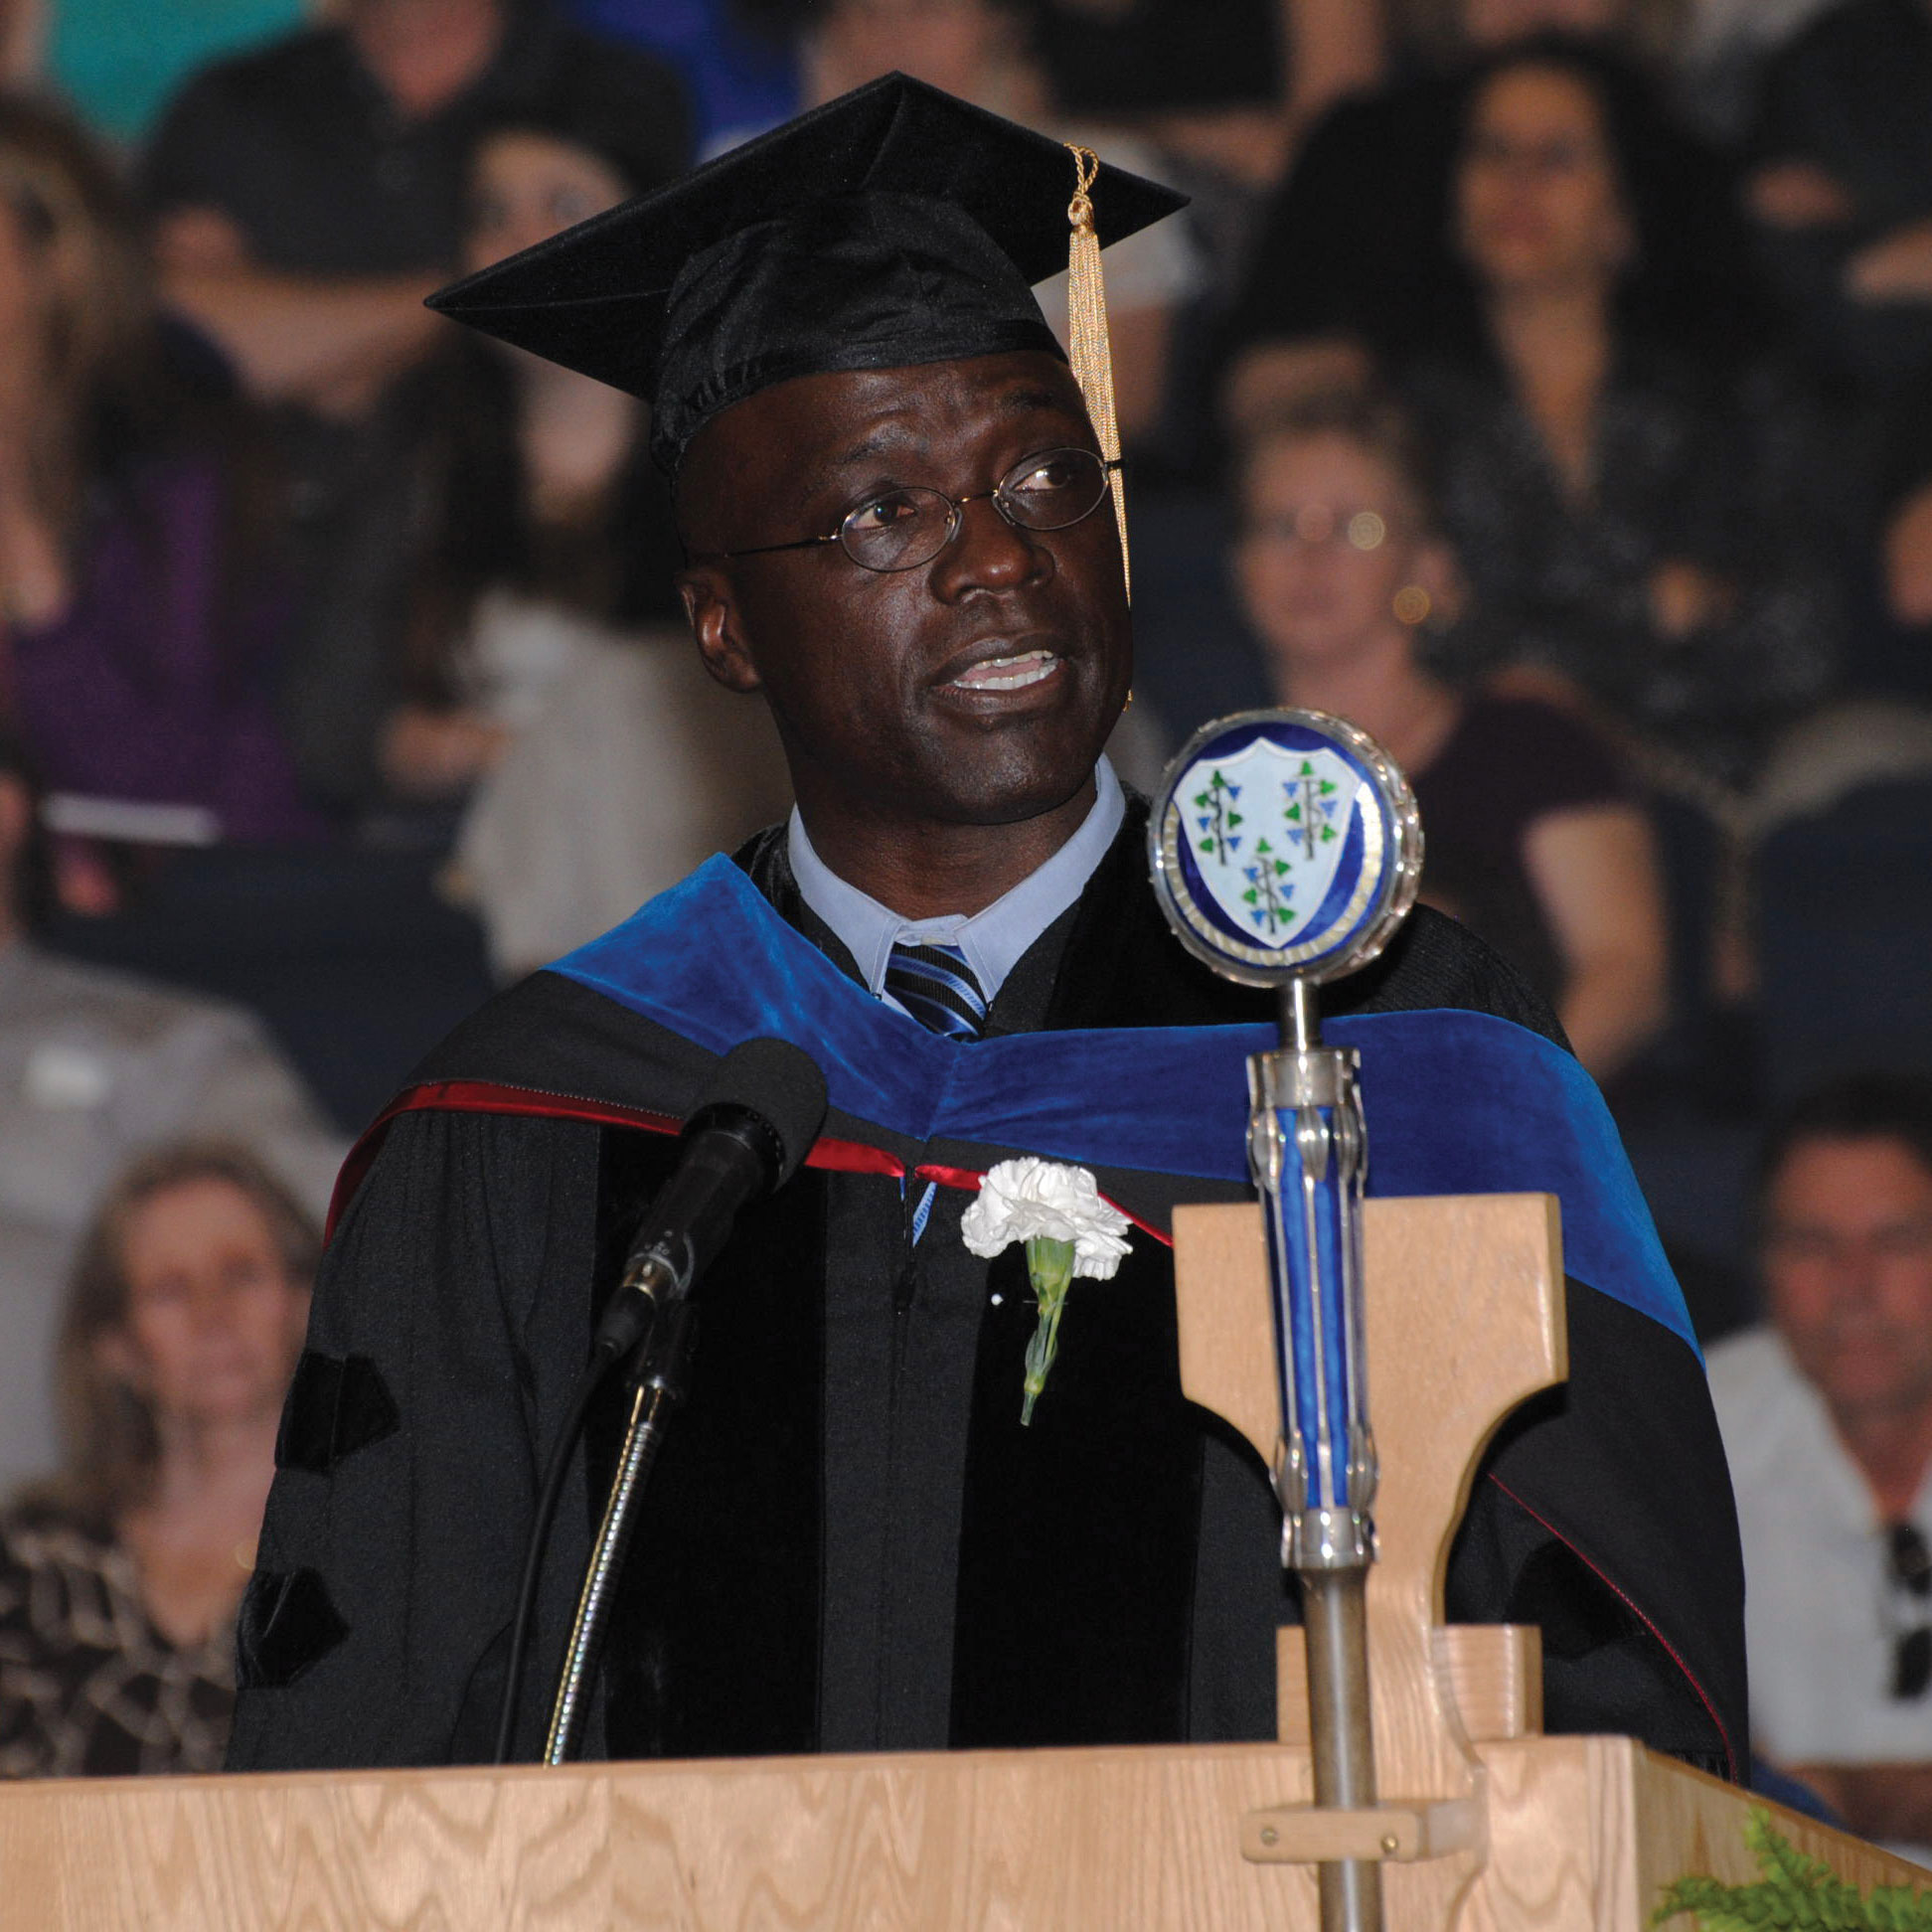 """During his 2014 commencement address at the College of Agriculture, Health and Natural Resources, Omamo shared three hopes with, and made three asks of, the graduates, including that they plant something to harvest every year. Doing so, he said, """"connects you to the world in a way that is truly unique and soul-enriching."""""""